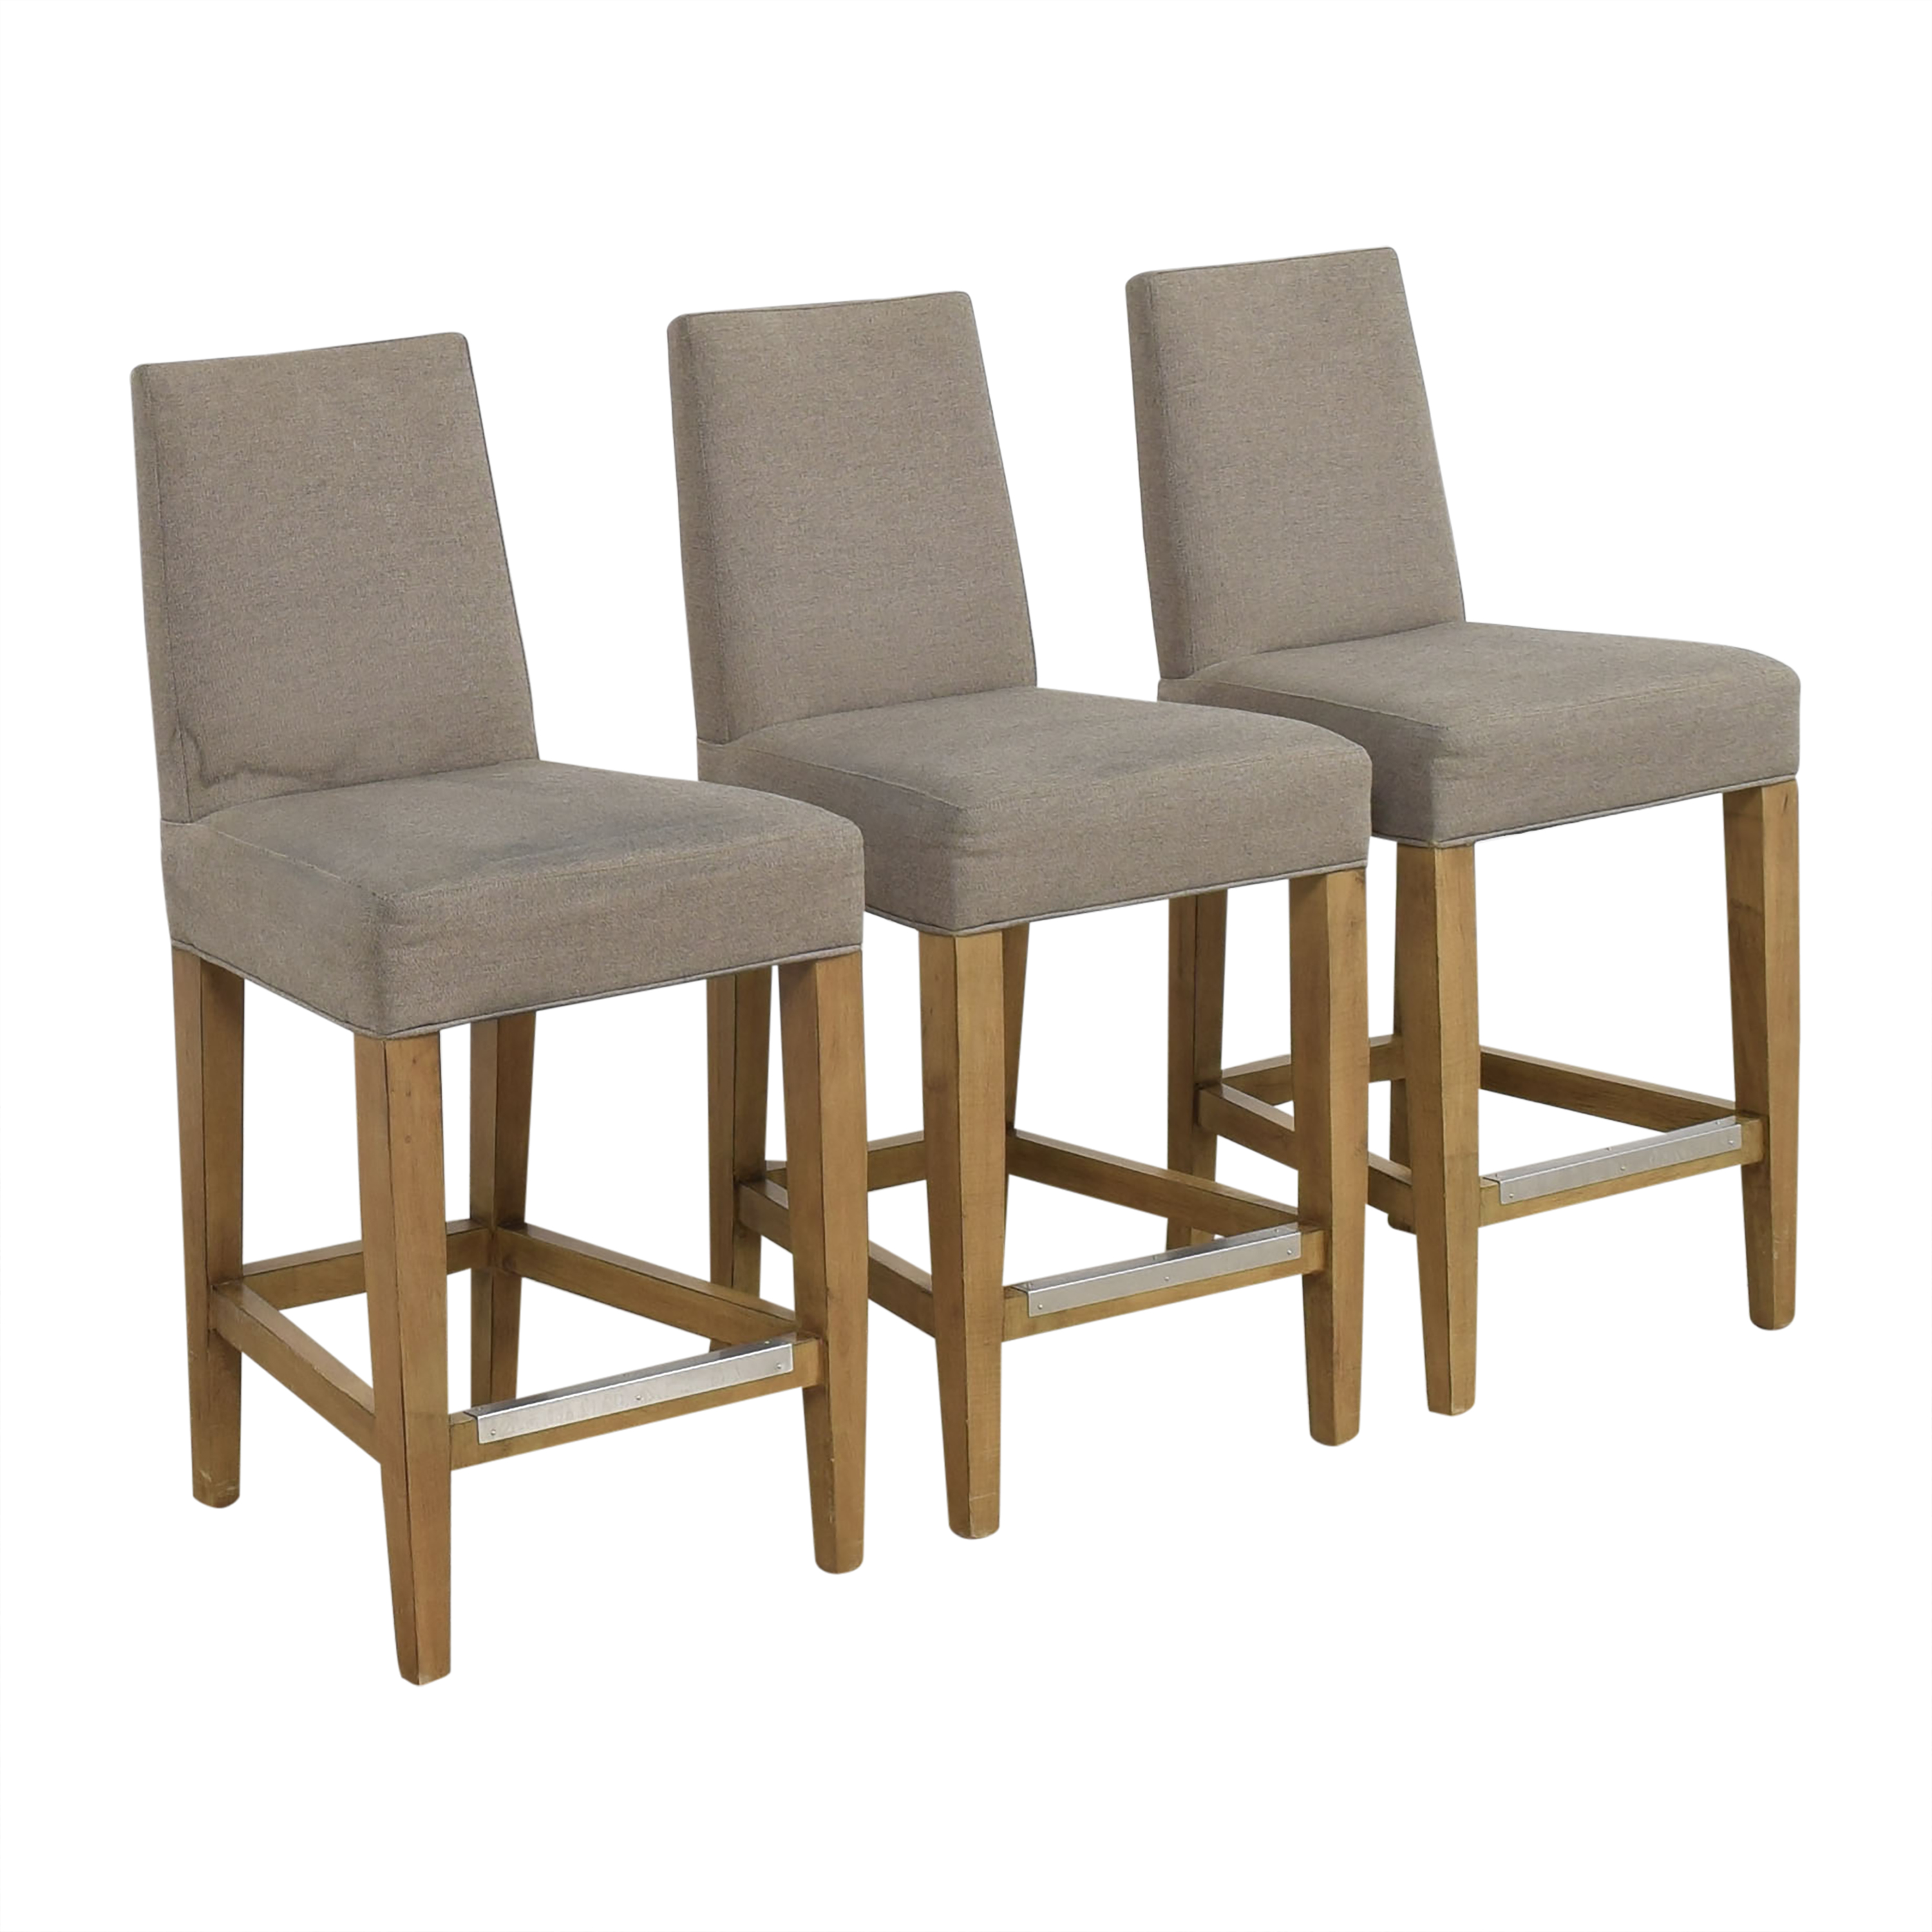 Lillian August Lillian August Couture Upholstered Counter Stools discount